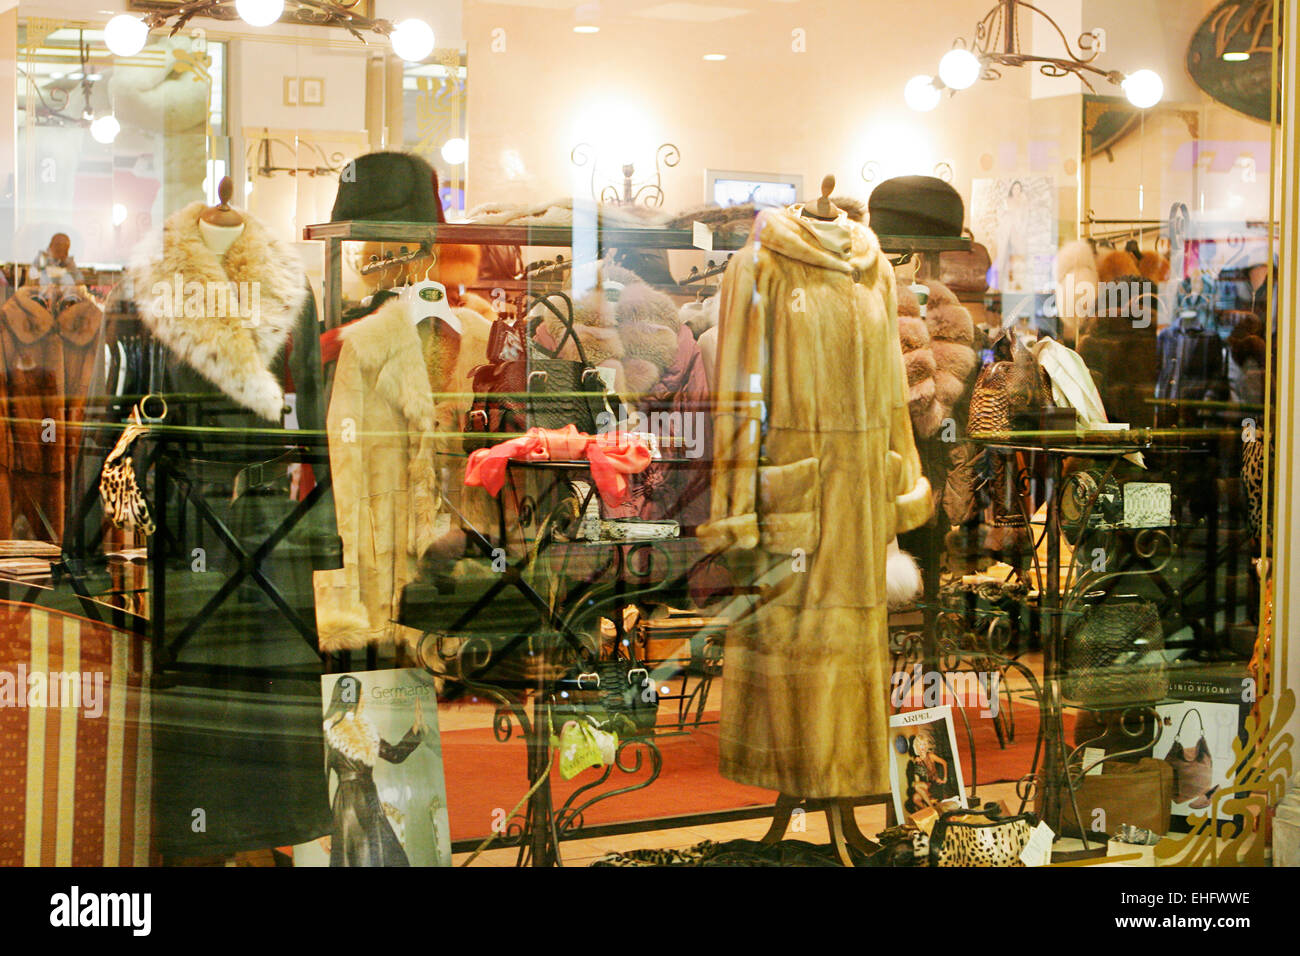 Fur coats for sale in shop windows in Plovdiv Bulgaria Stock Photo ...